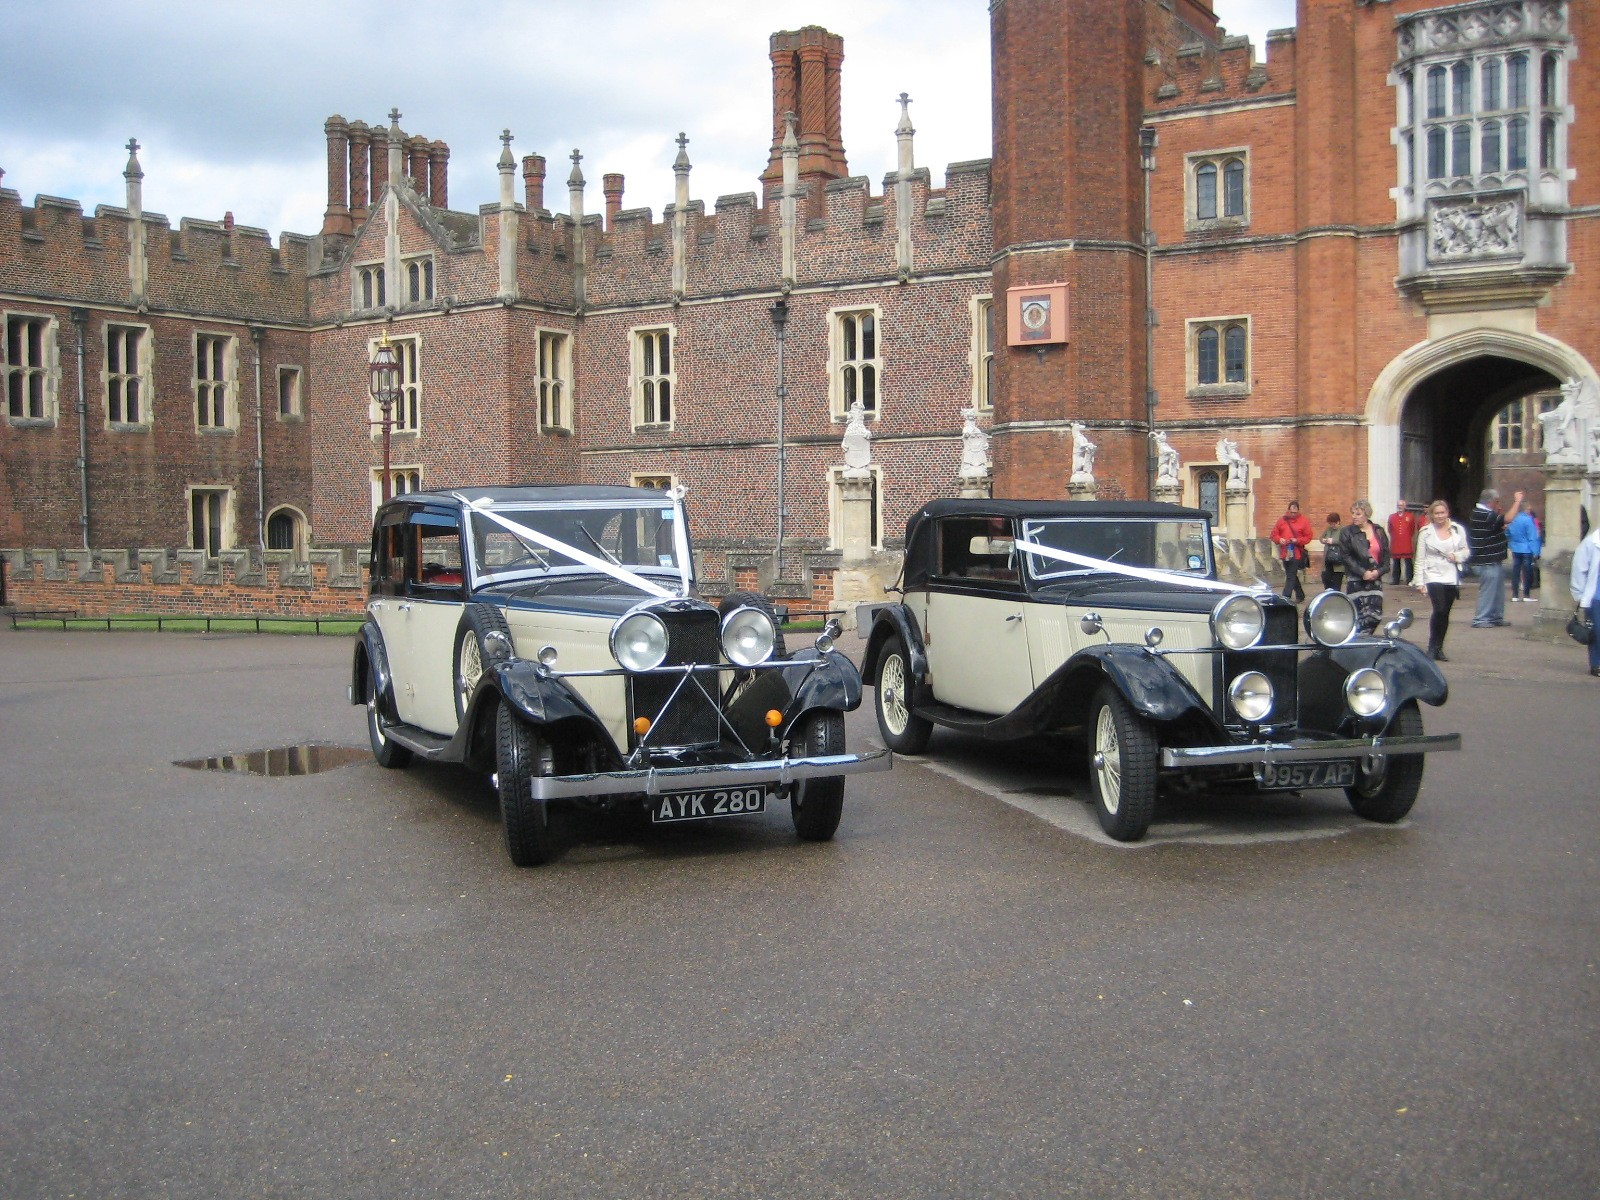 two vintage wedding cars in front of hampton court palace